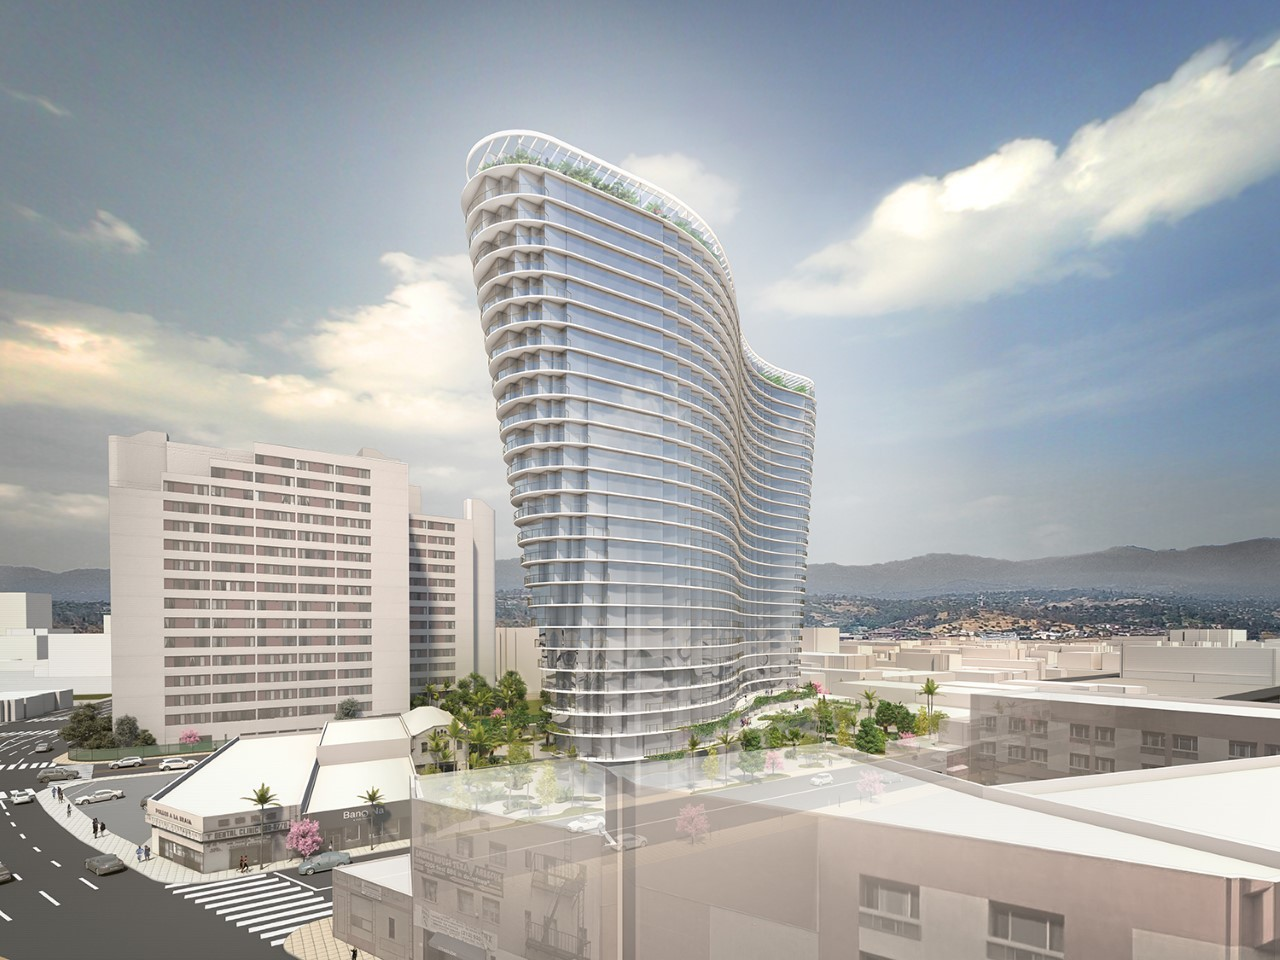 Gallery Of Studio Gang S Curved Mixed Use Tower To Be